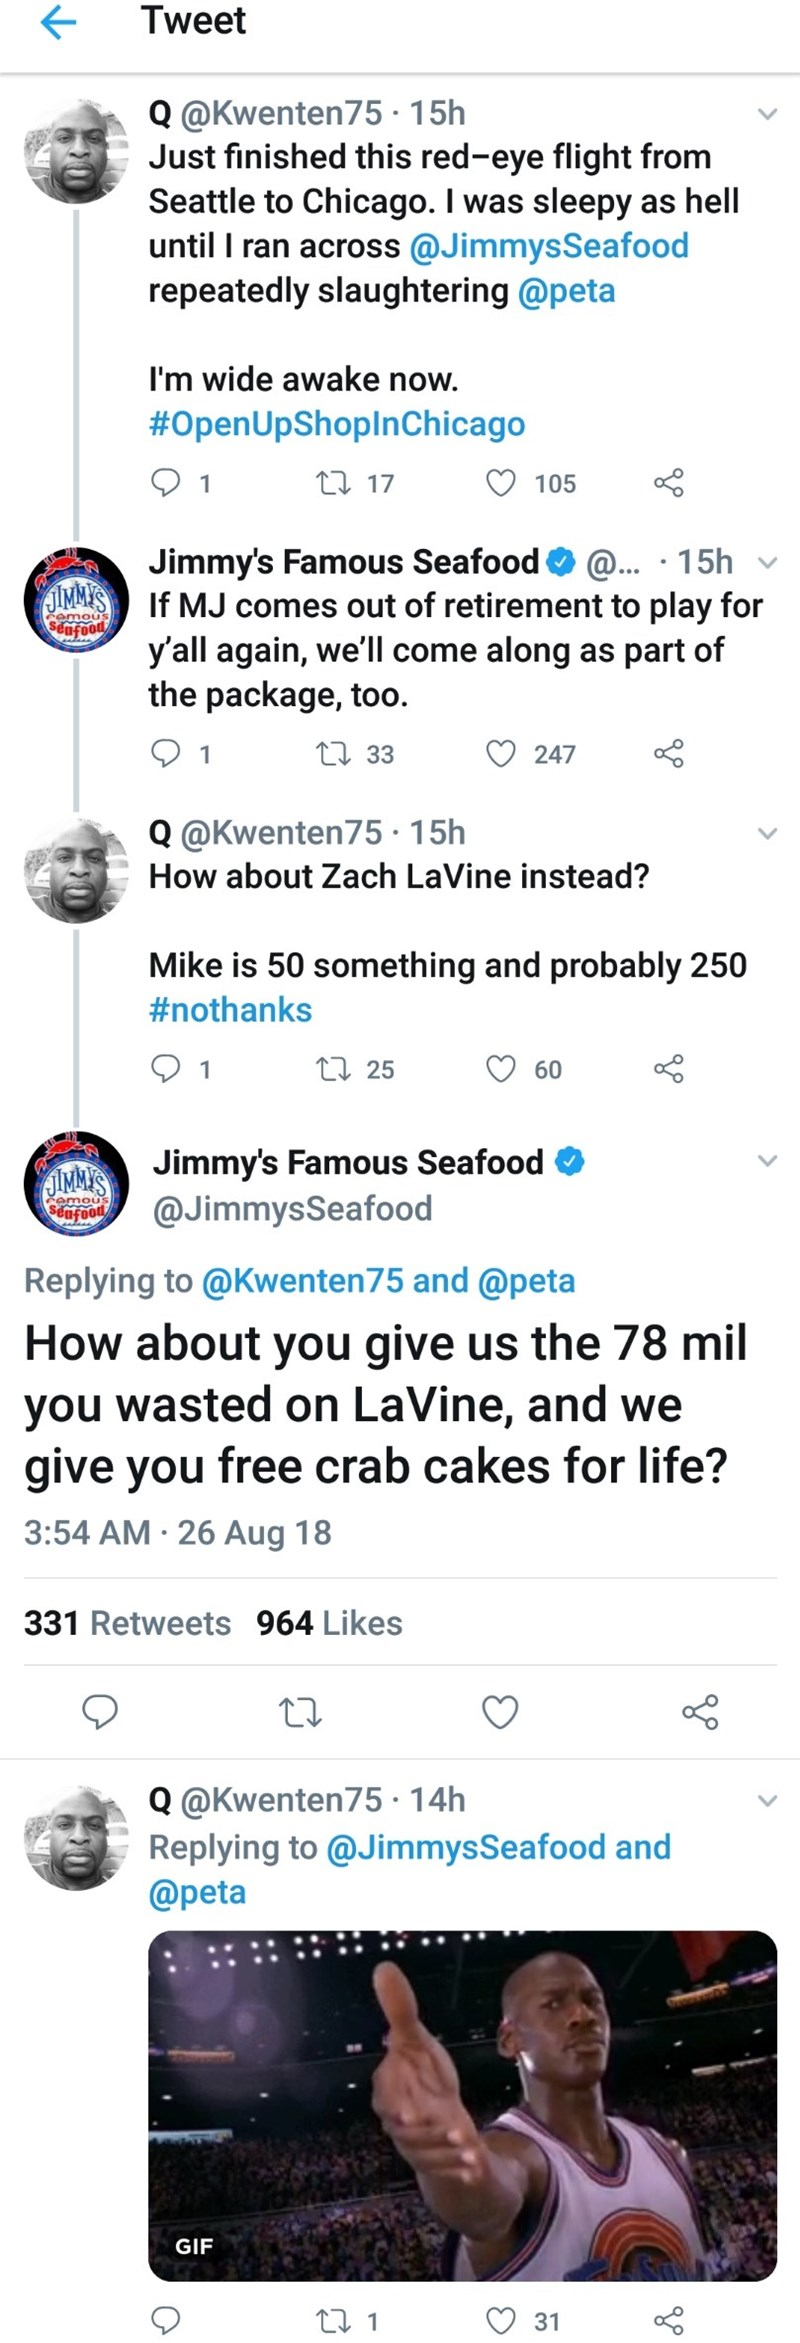 Text - Tweet Q @Kwenten75-15h Just finished this red-eye flight from Seattle to Chicago. I was sleepy as hell until I ran across @JimmysSeafood repeatedly slaughtering @peta I'm wide awake now. #OpenUpShoplnChicago L 17 105 1 Jimmy's Famous Seafood MM'SIf MJ comes out of retirement to play for @... 15h emou eufoo y'all again, we'll come along as part of the package, too. L 33 247 1 Q@Kwenten75 15h How about Zach LaVine instead? Mike is 50 something and probably 250 #nothanks L 25 60 AMMSJimmy's